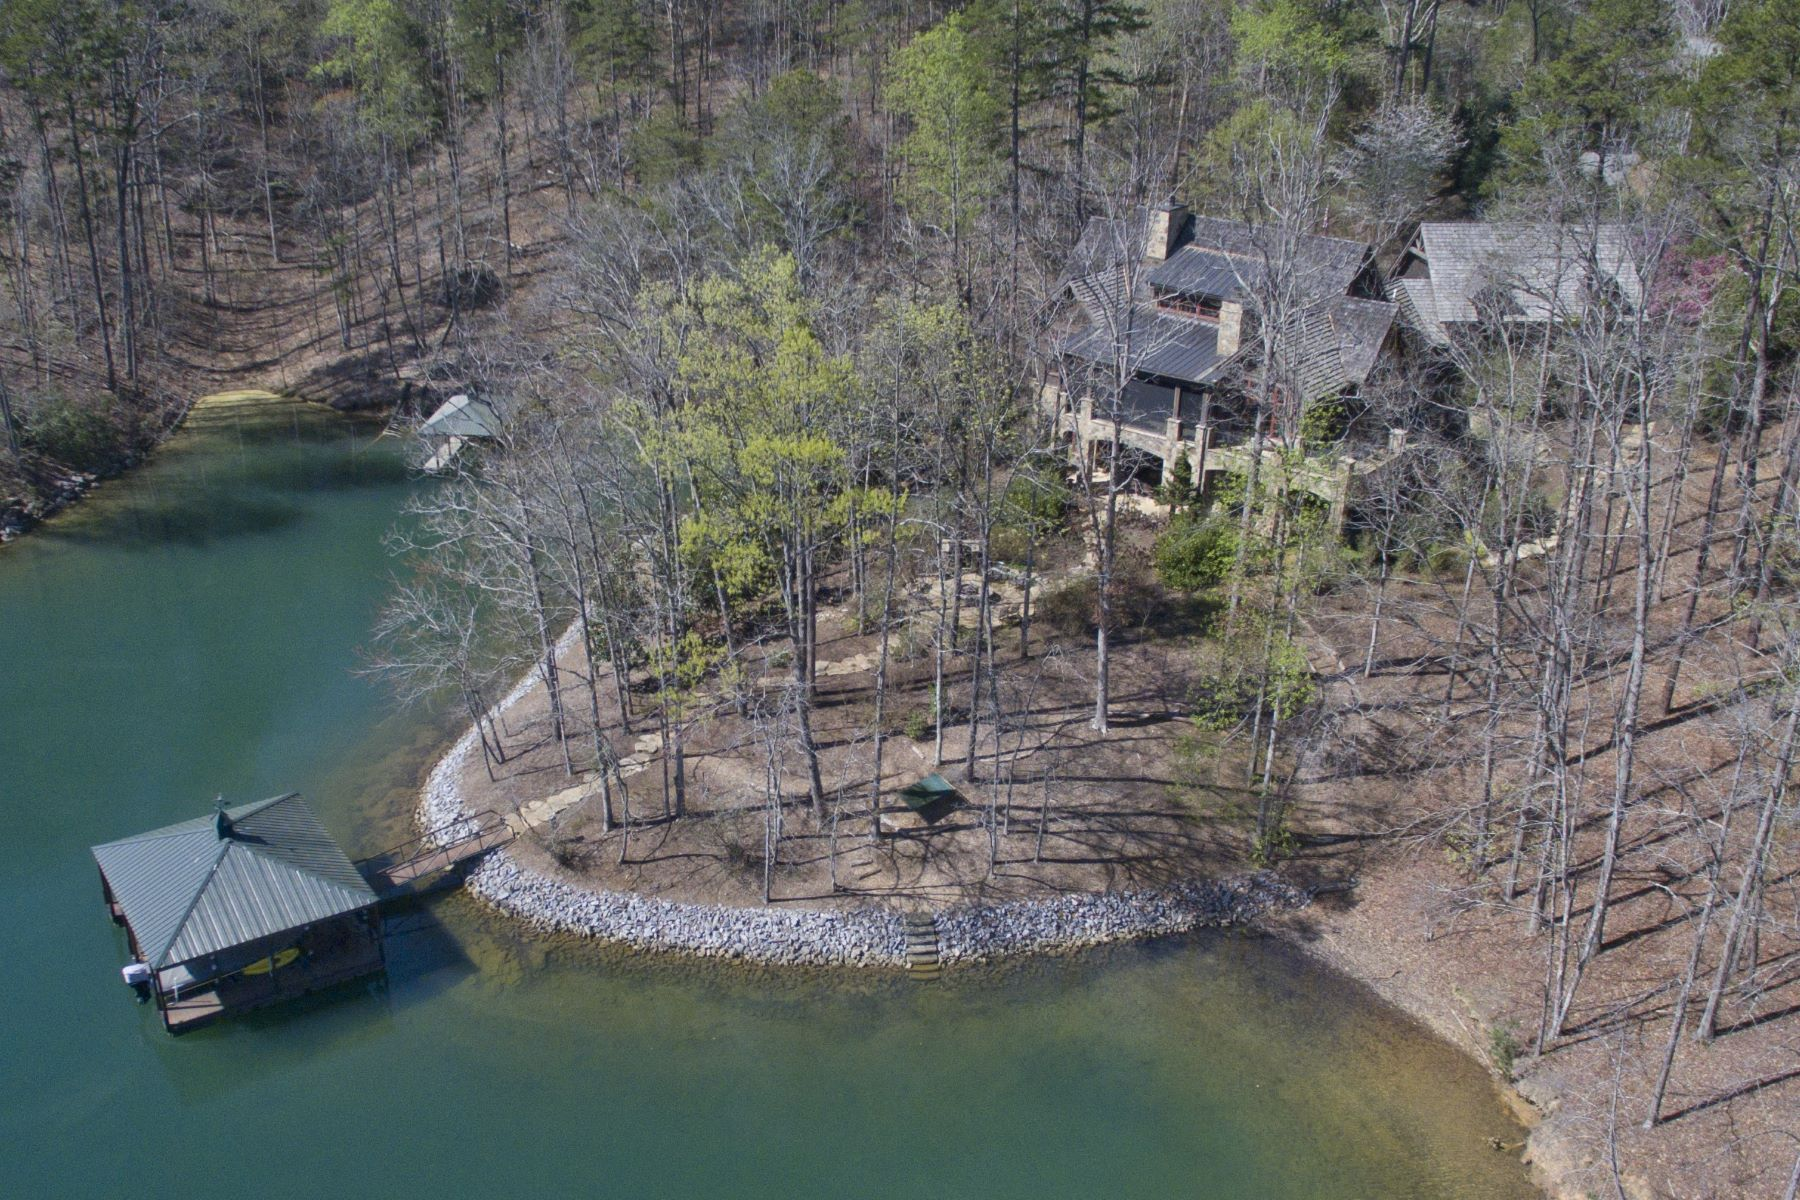 Single Family Home for Sale at Waterfront Estate with Charm, Comfort, Convenience & Privacy 214 Creek Stone Court The Cliffs At Keowee Springs, Six Mile, South Carolina, 29682 United States